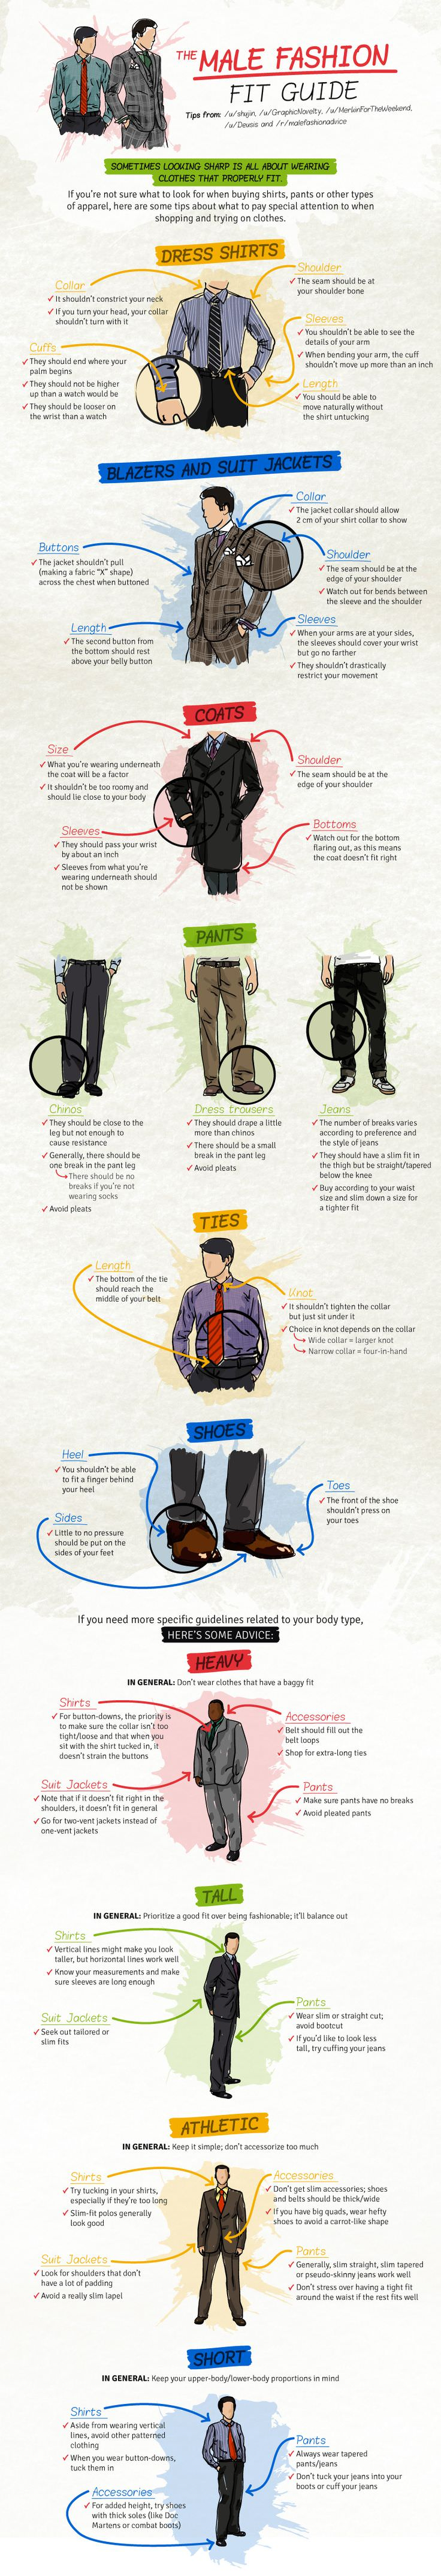 fashion fit guide, men's fashion in one infographic